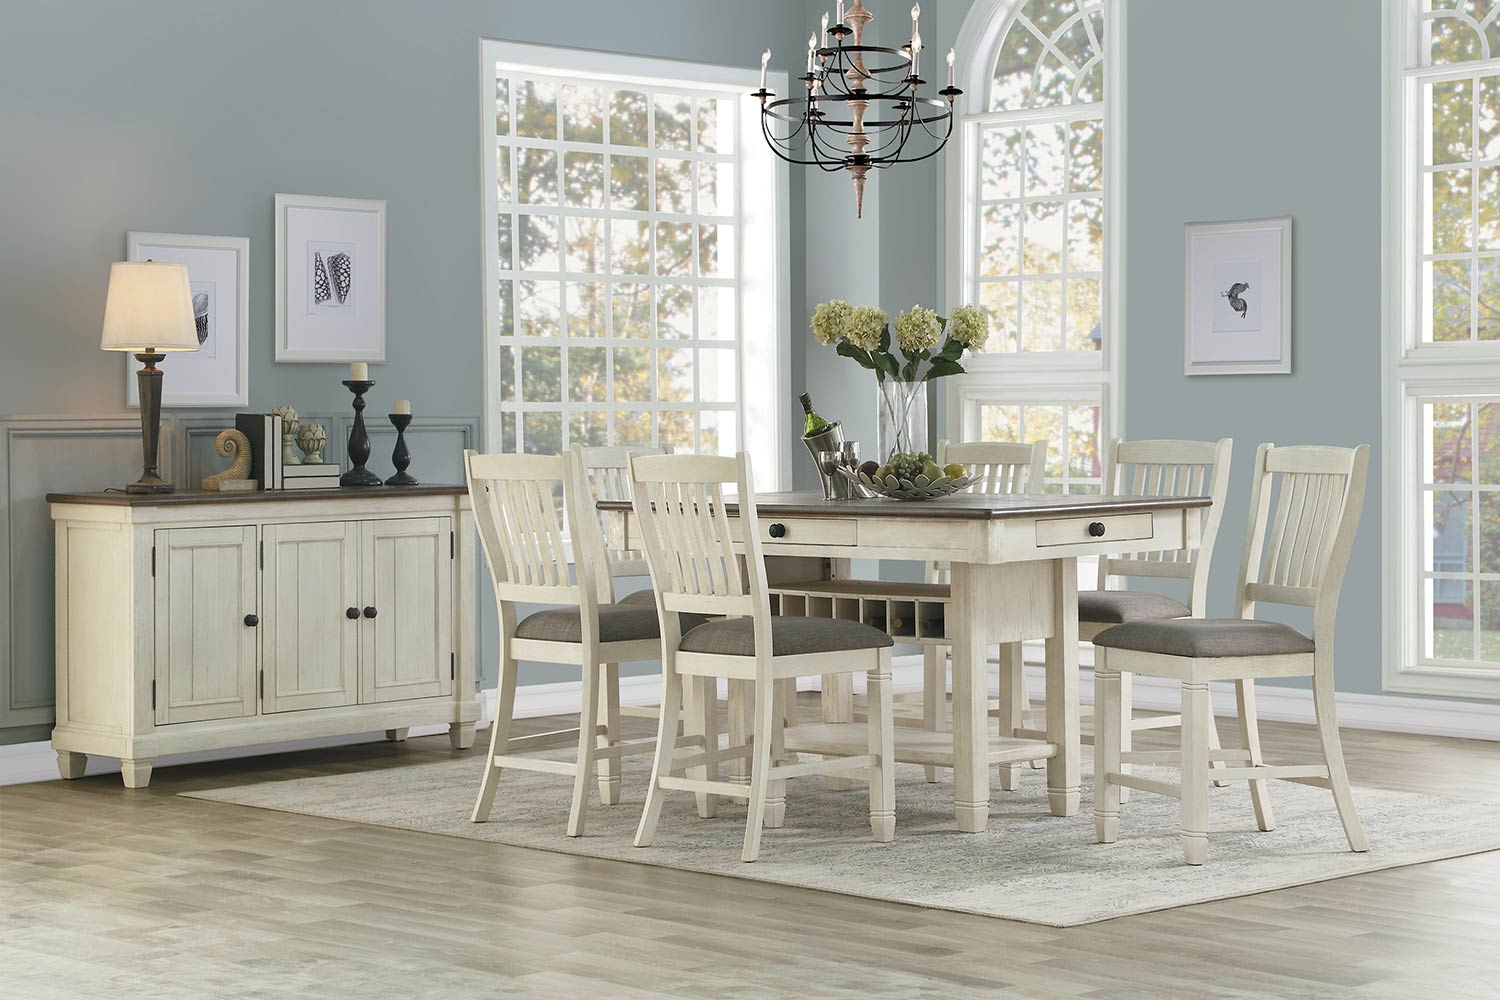 Homelegance Granby Counter Height Dining Set - Antique White - Rosy Brown